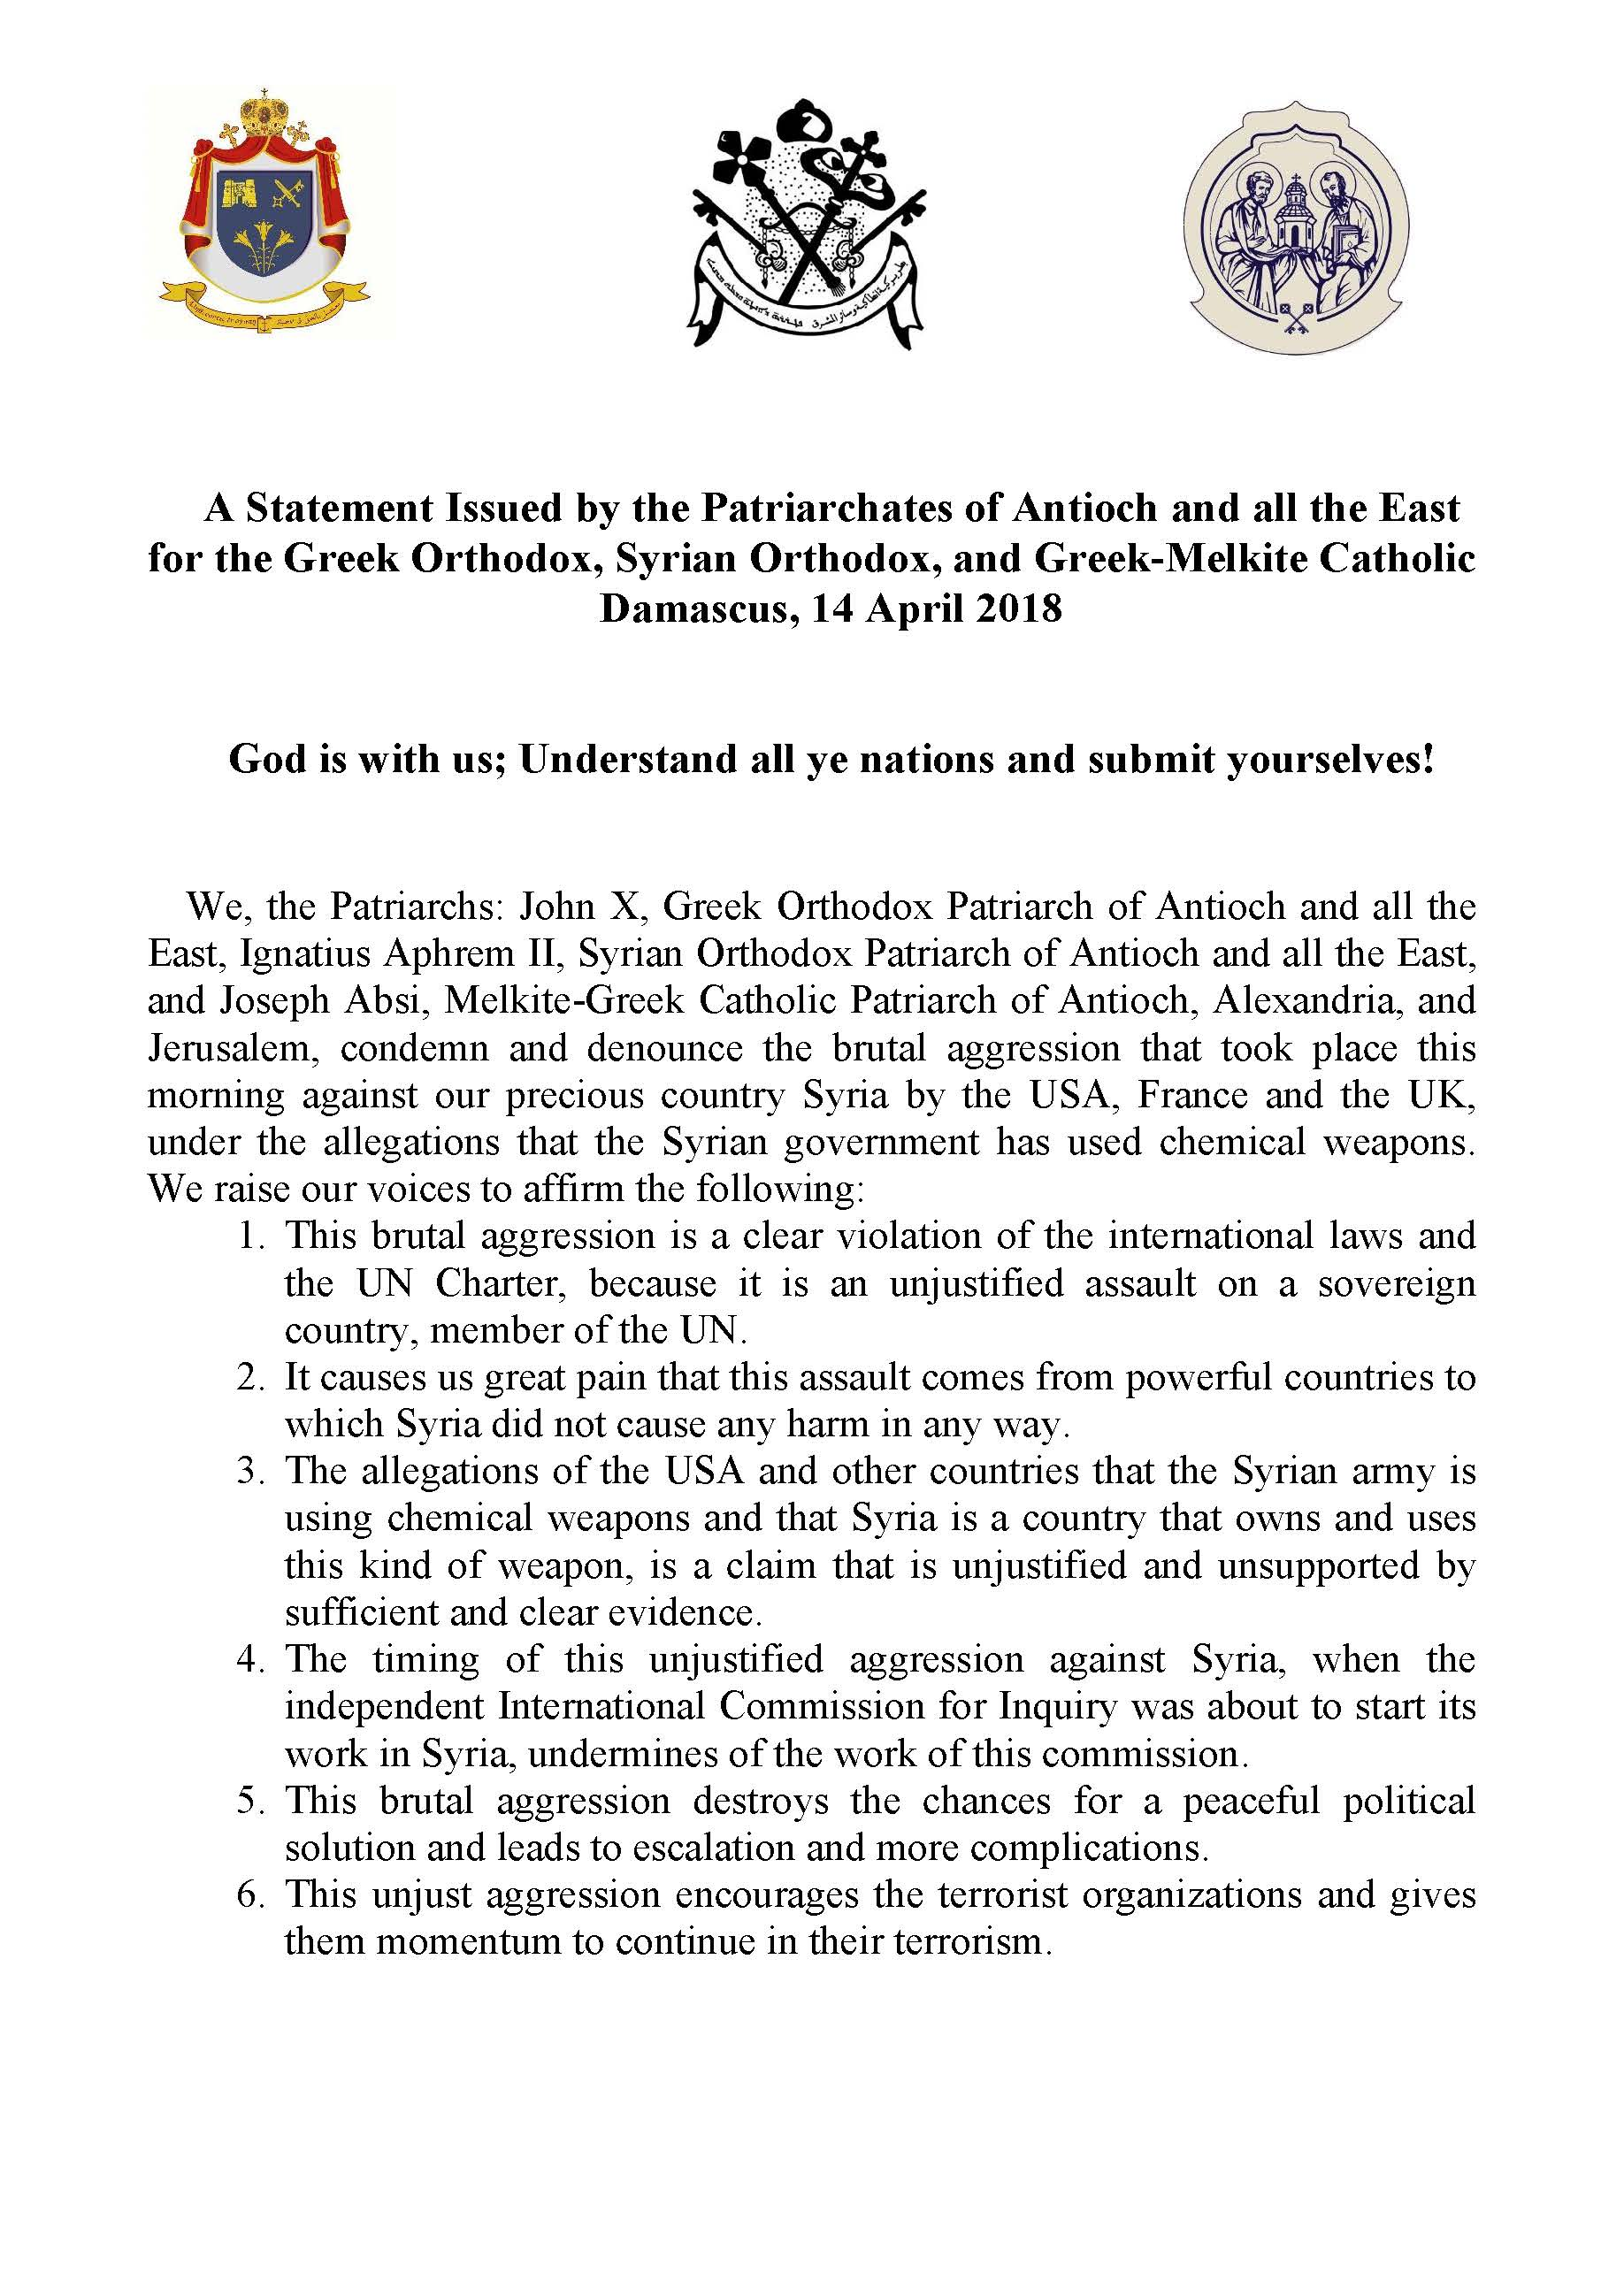 A Statement Issued by the Patriarchates of Antioch and all the East for the Greek Orthodox, Syrian Orthodox, and Greek-Melkite Catholic